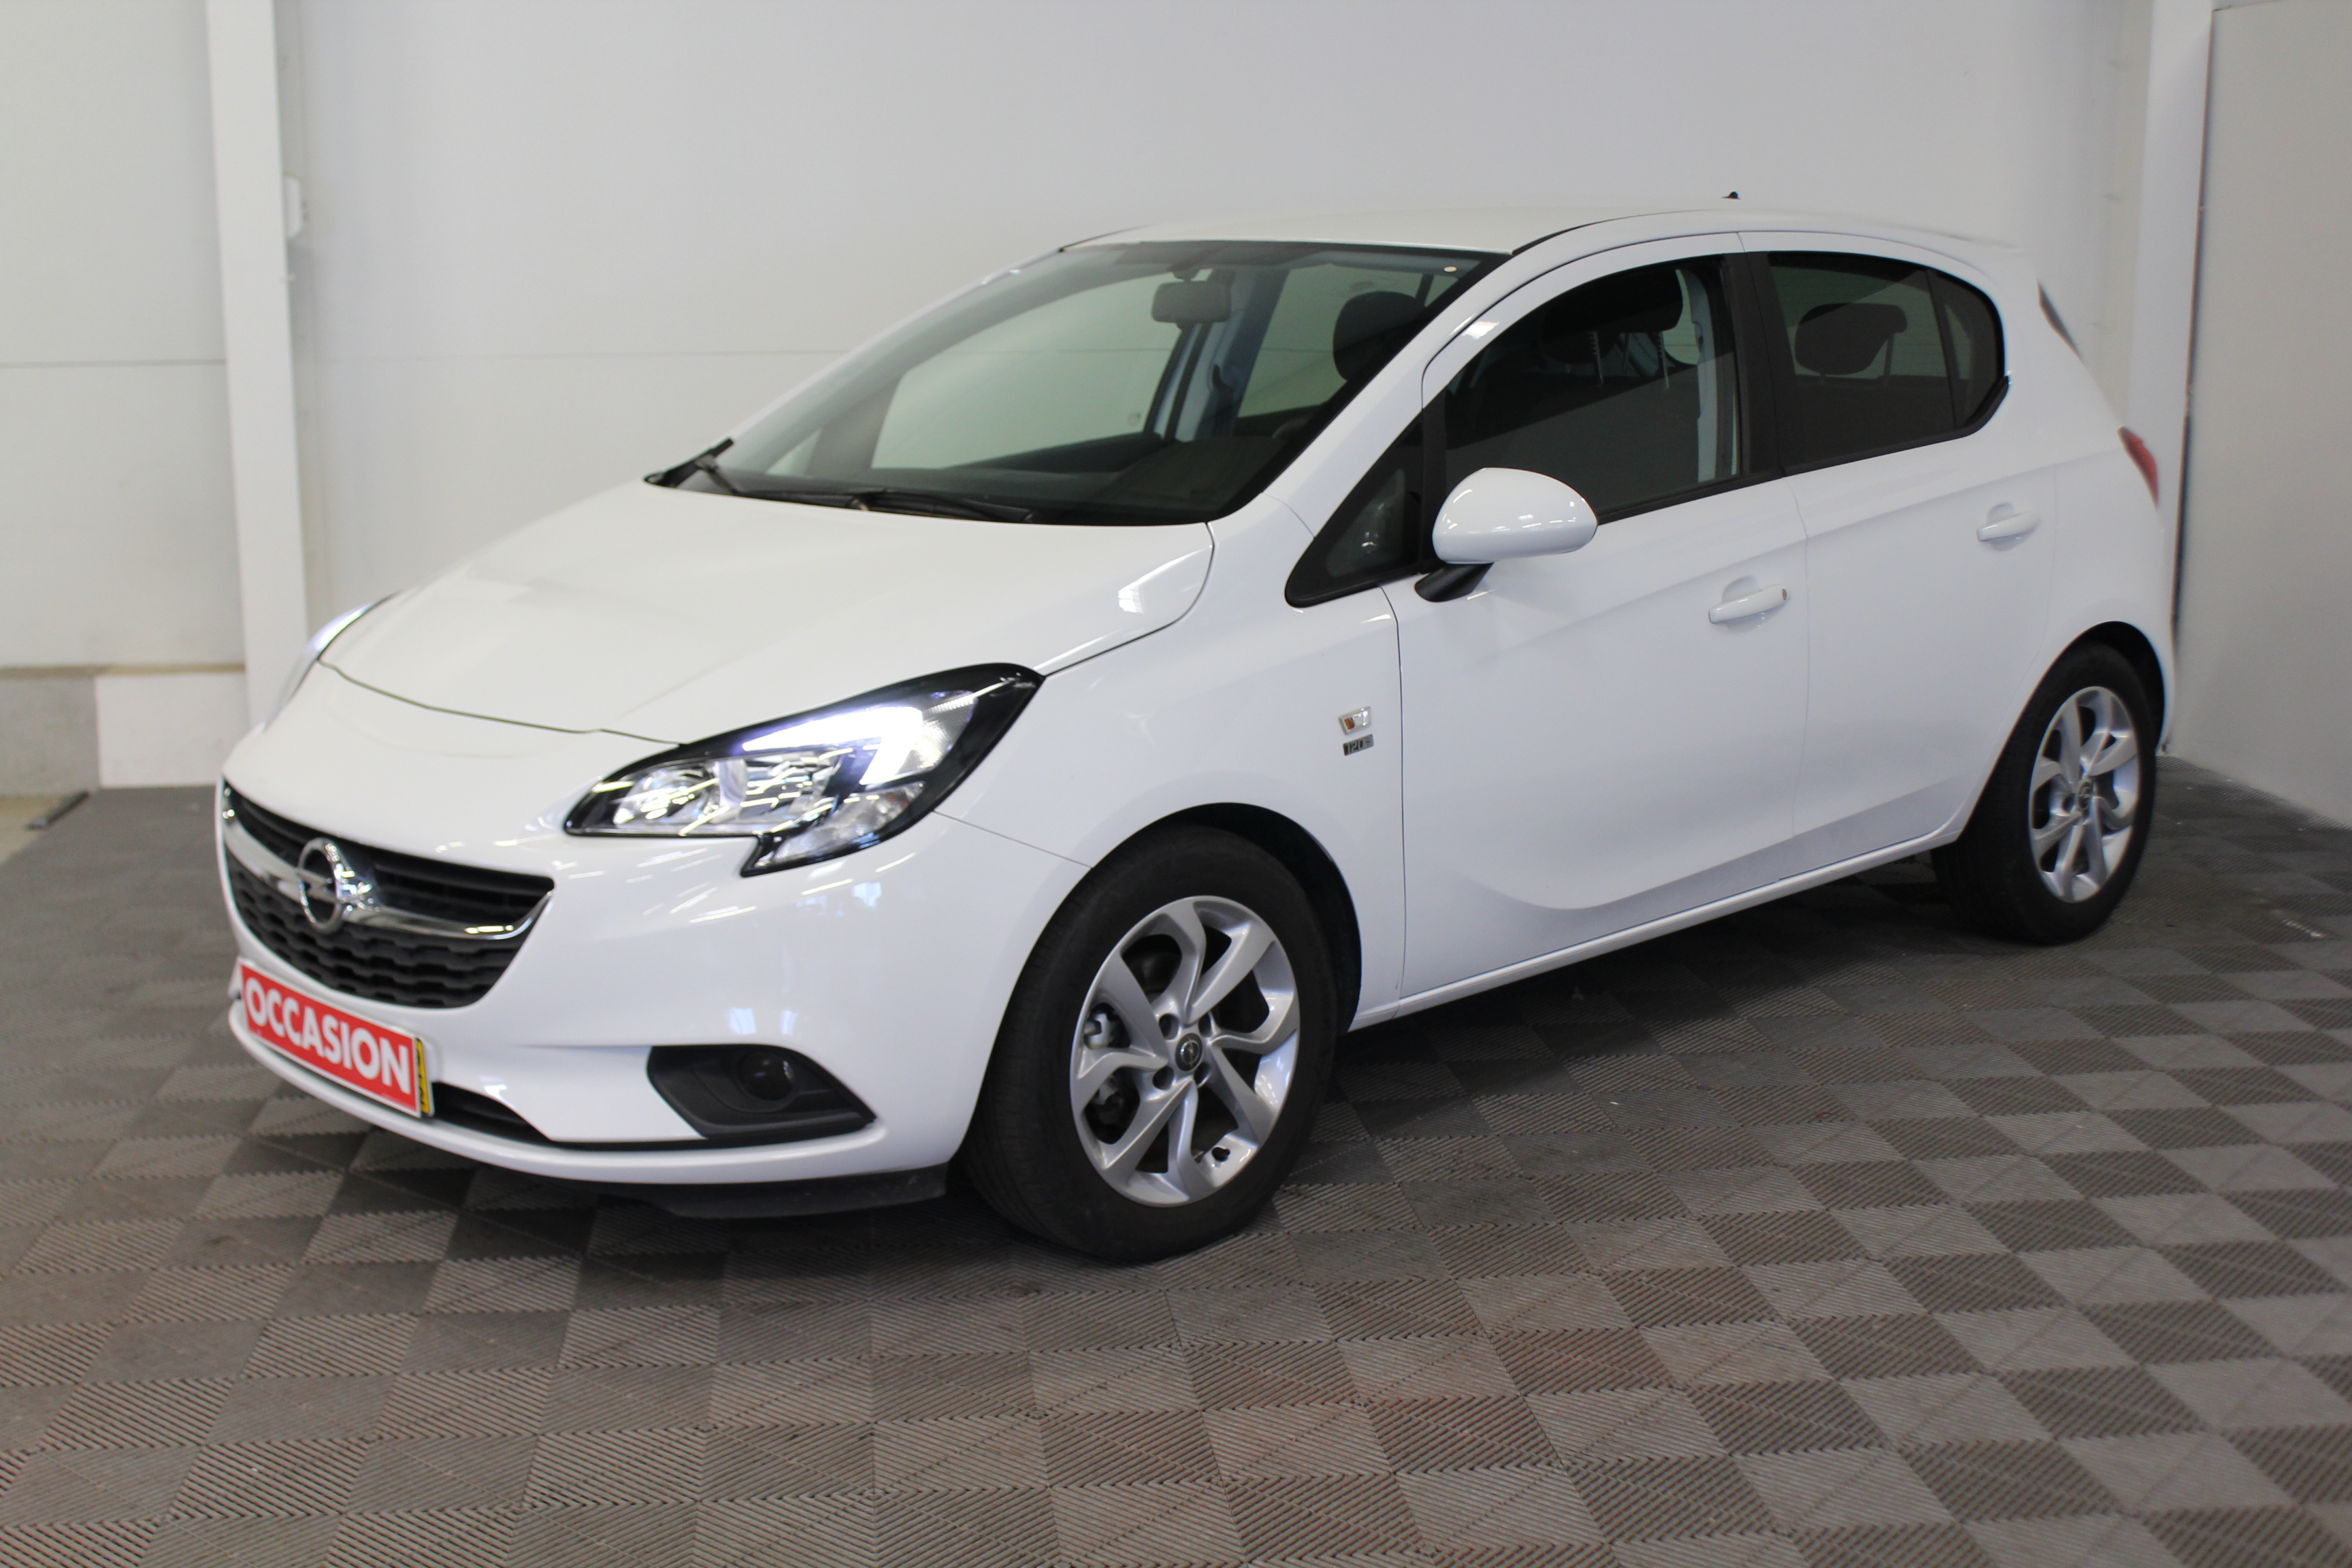 OPEL CORSA 1.2 70 ch Edition 120 ans d'occasion